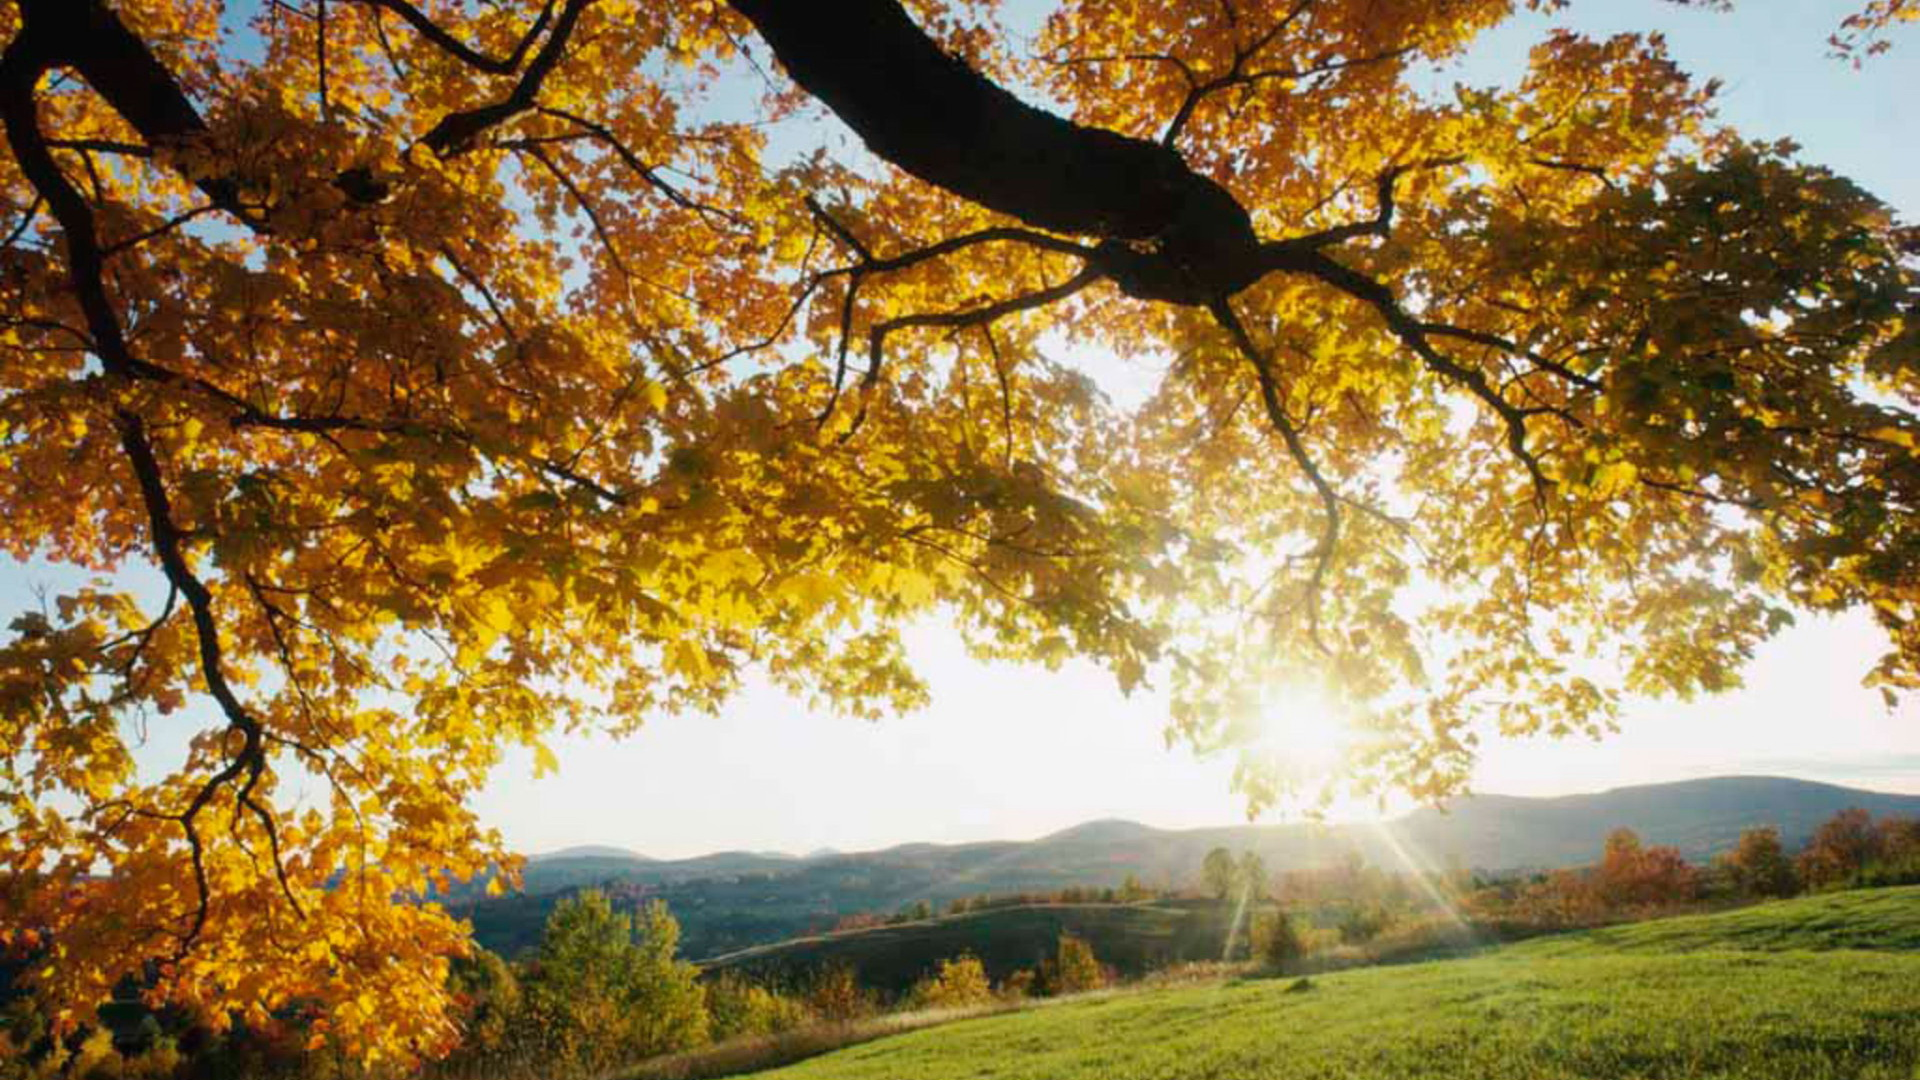 click to free download the wallpaper--Free Download Natural Scenery Picture - Leaves of the Tree Are Turning Yellow, Appreciative of the Fruitful Autumn 1920X1080 free wallpaper download